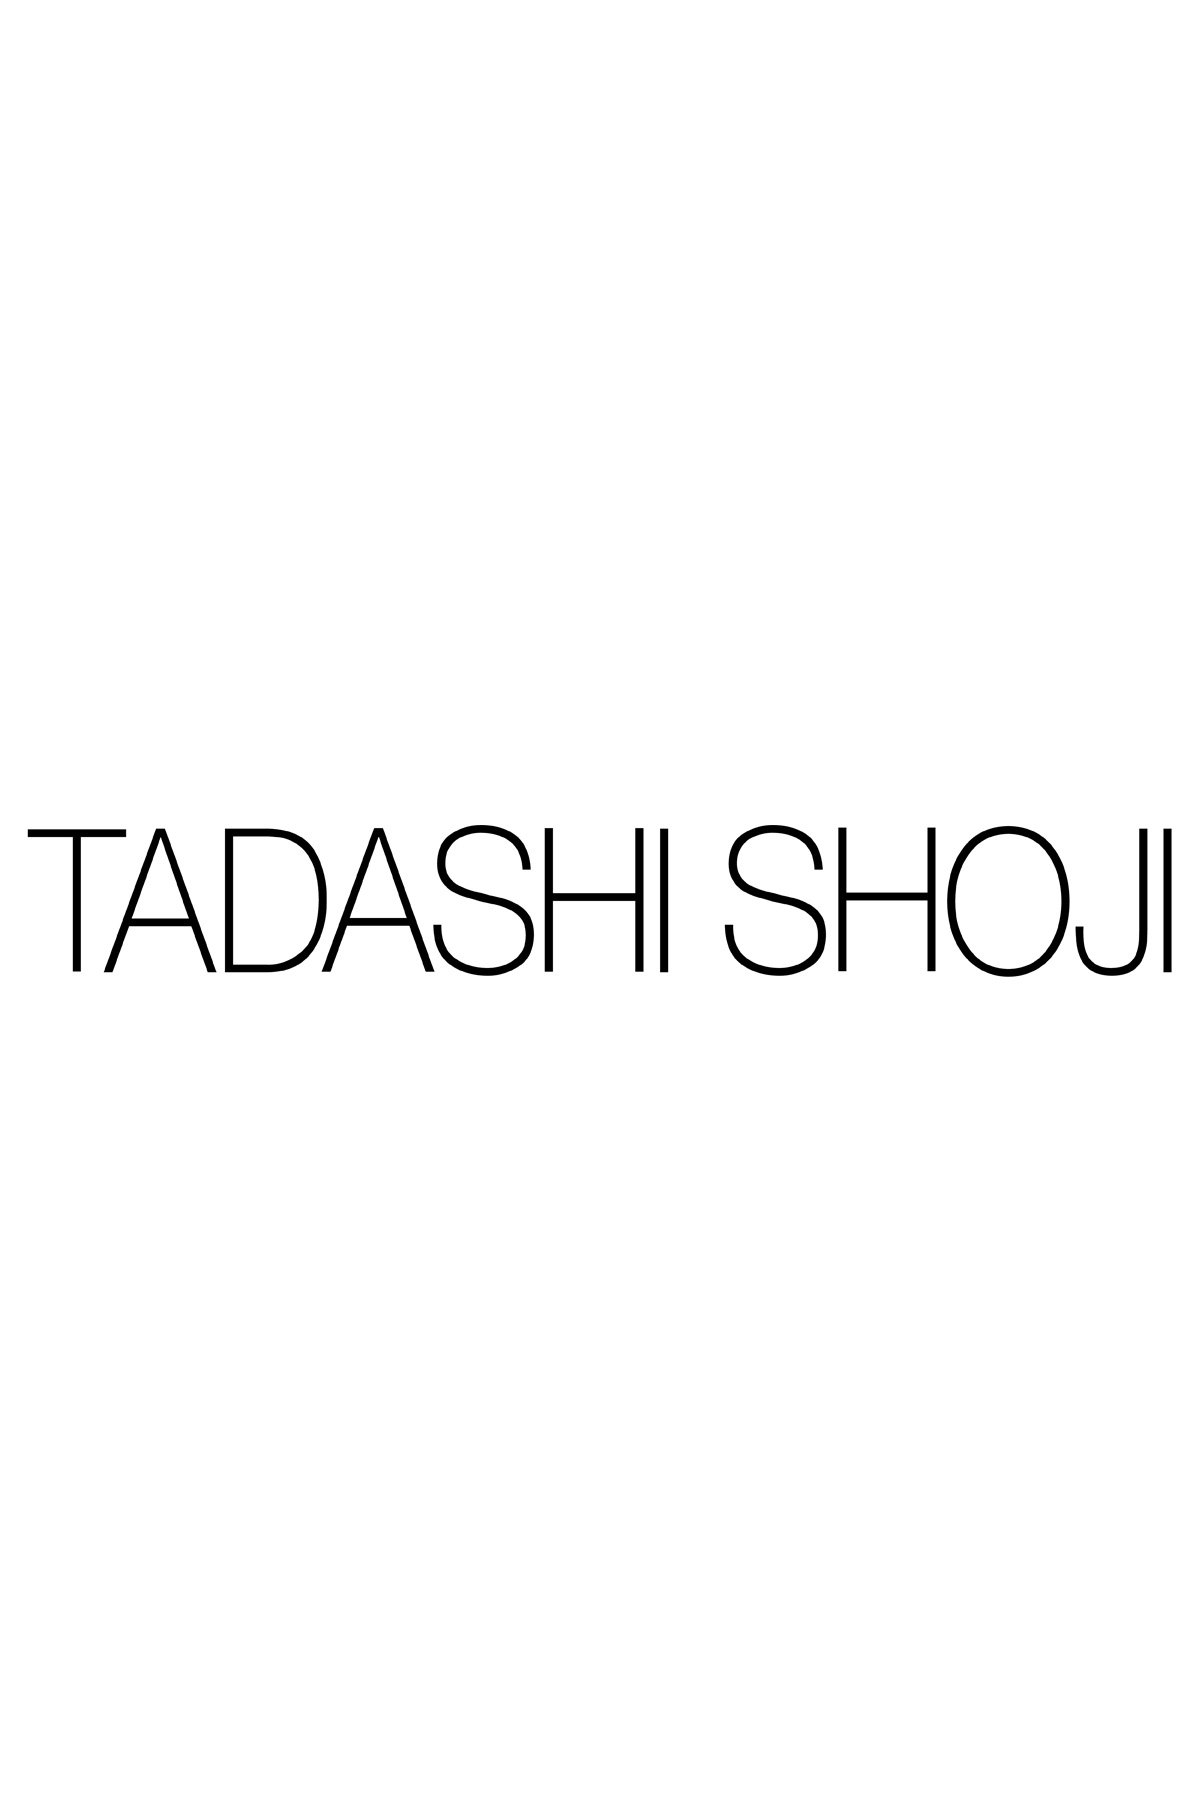 Paillette Embroidered Lace V-Neck ¾ Sleeve Dress in Mystic Teal ...